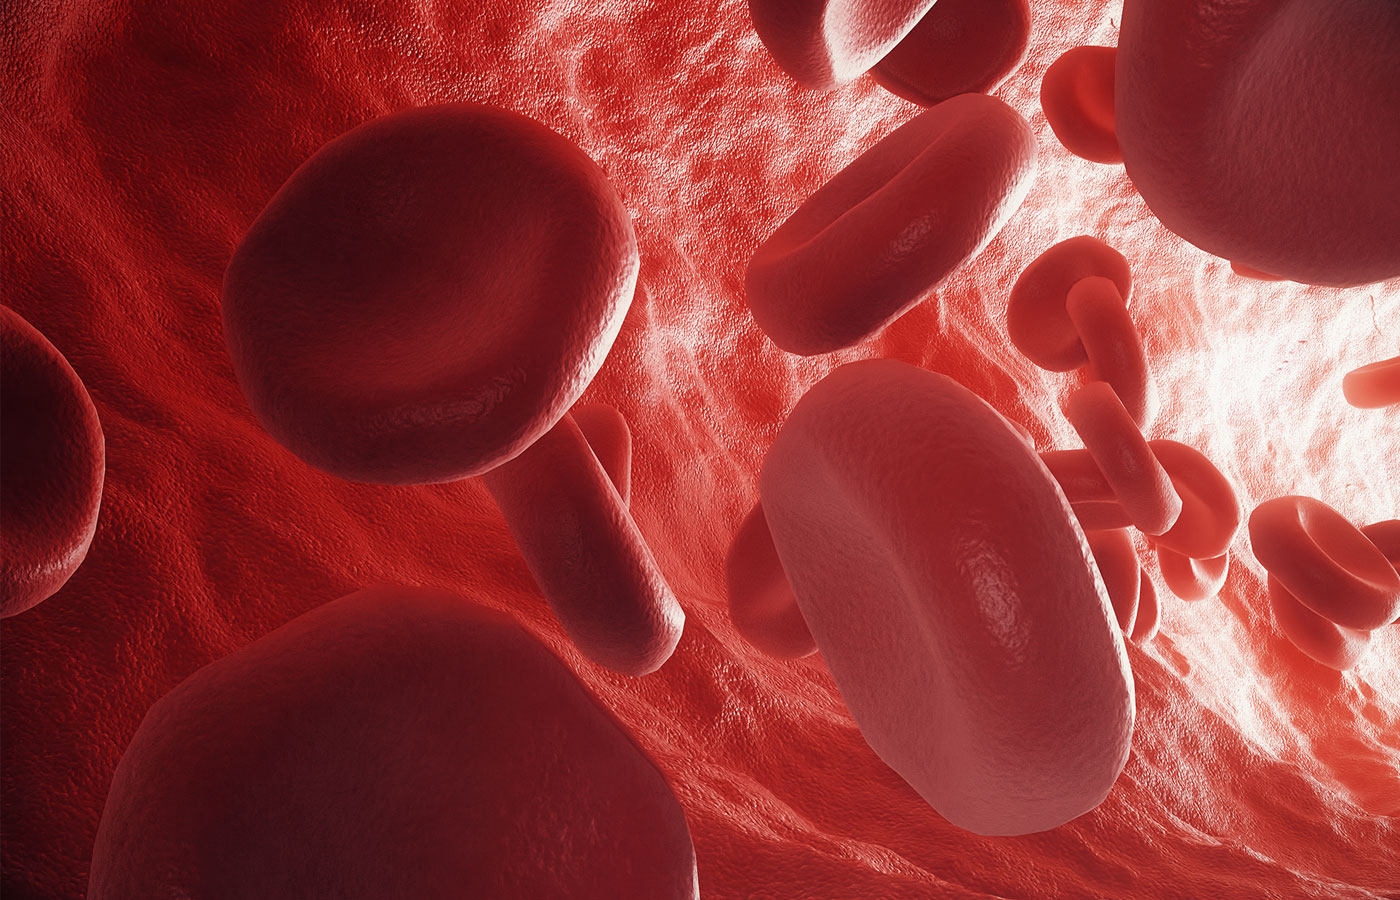 3d rendering red blood cells